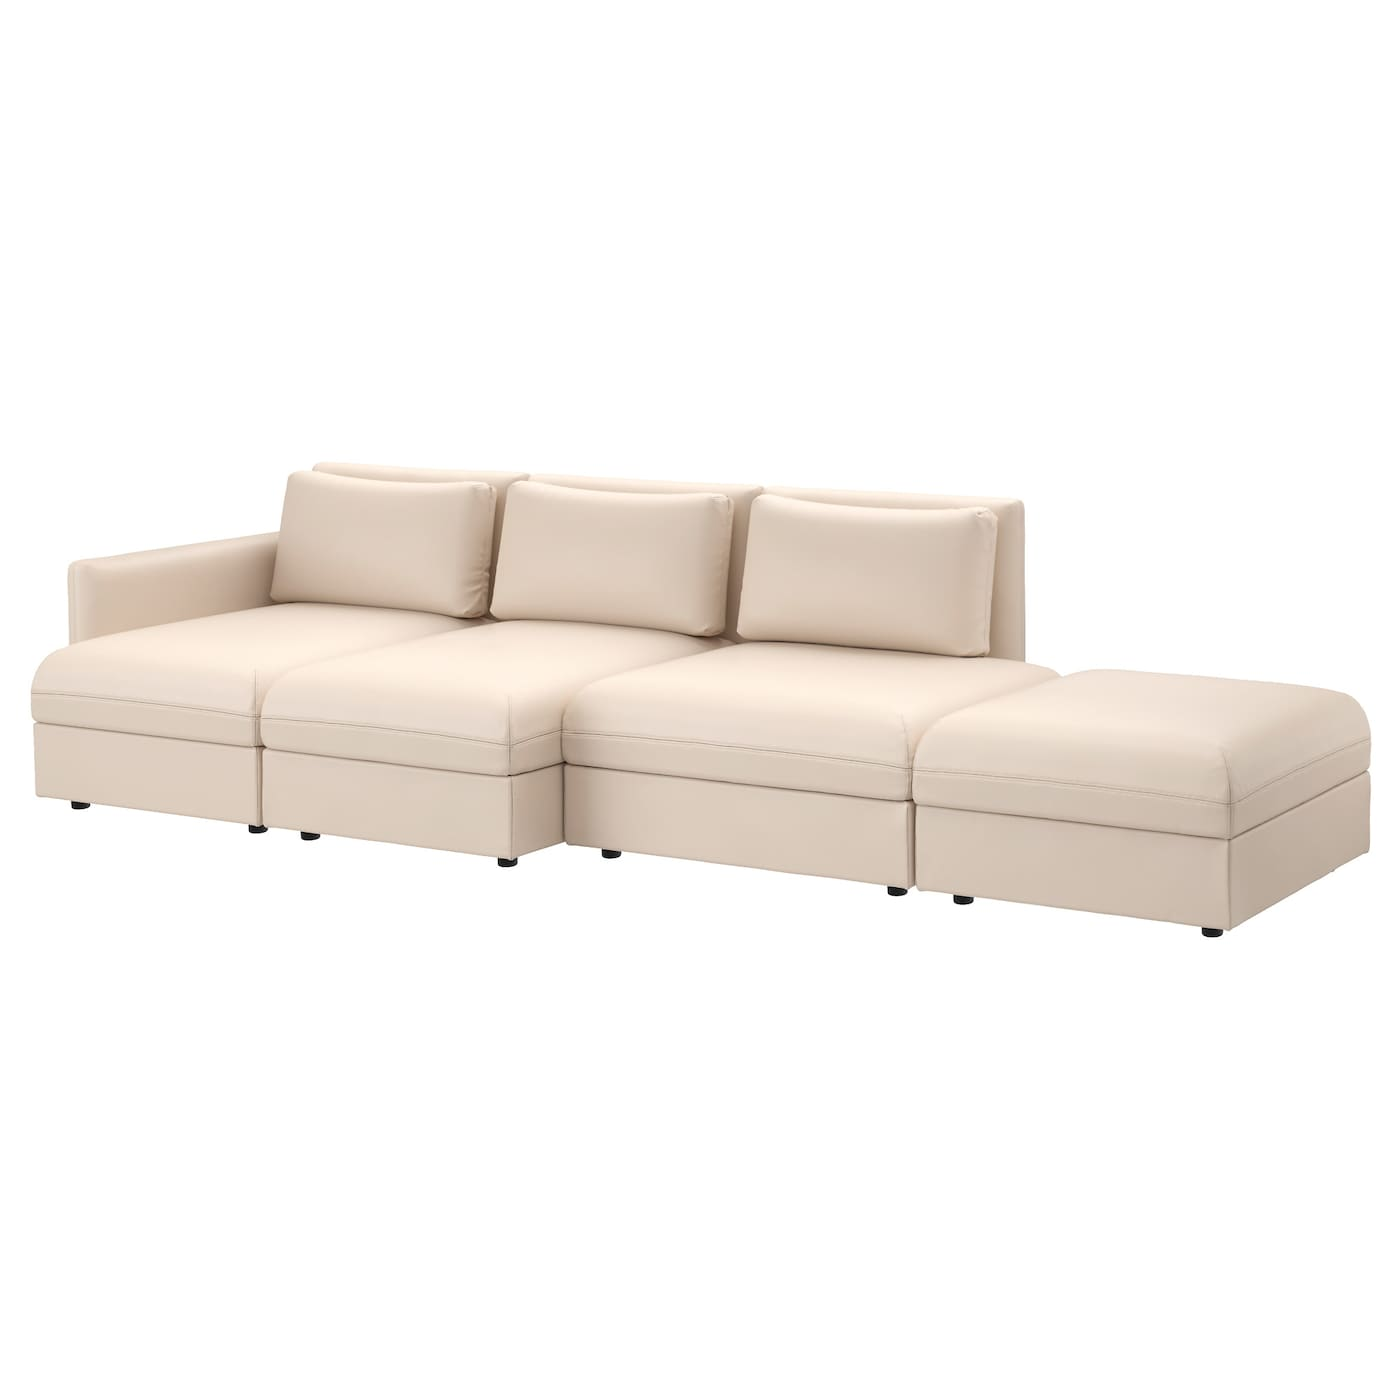 Modular Furniture Sofa: Modular & Sectional Sofas